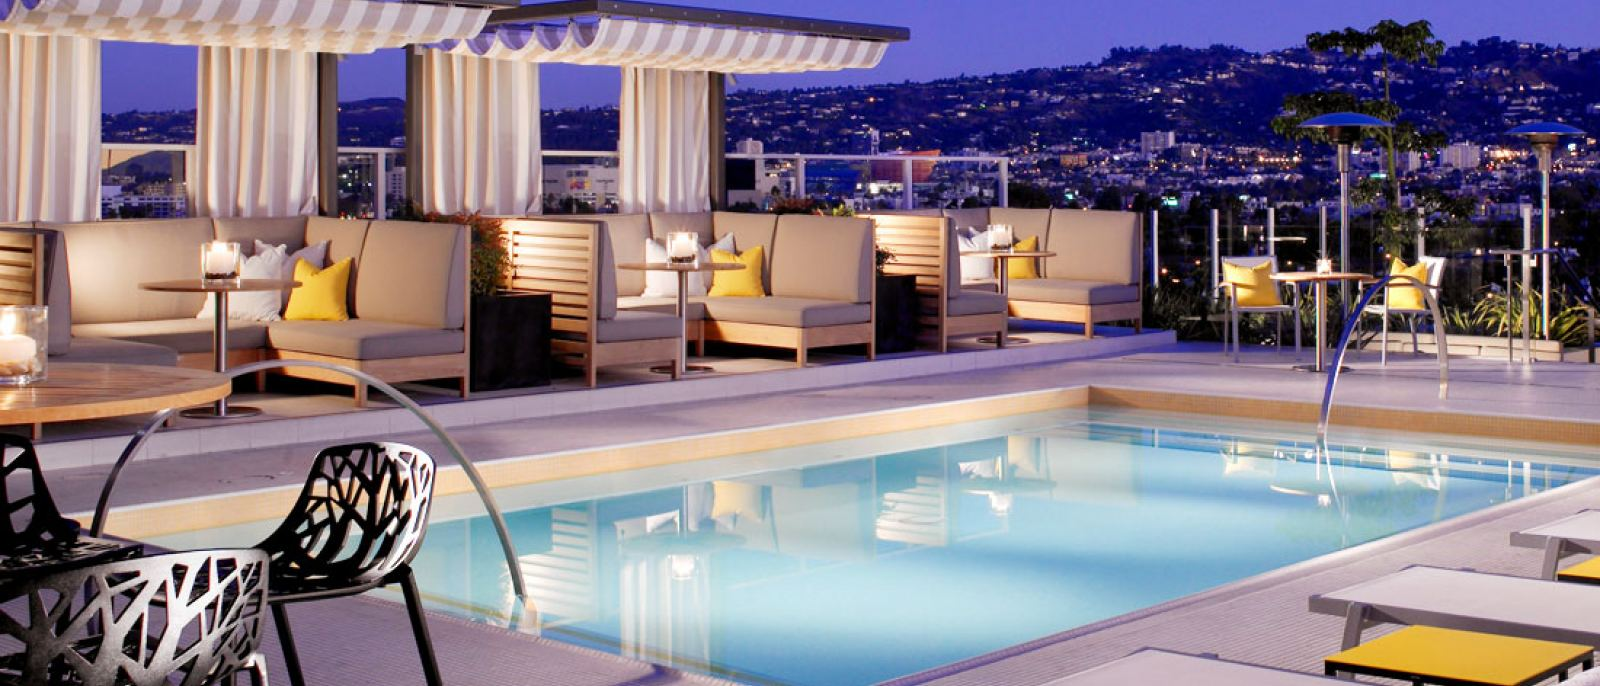 The Roof on Wilshire | Photo: Kimpton Hotel Wilshire, Facebook